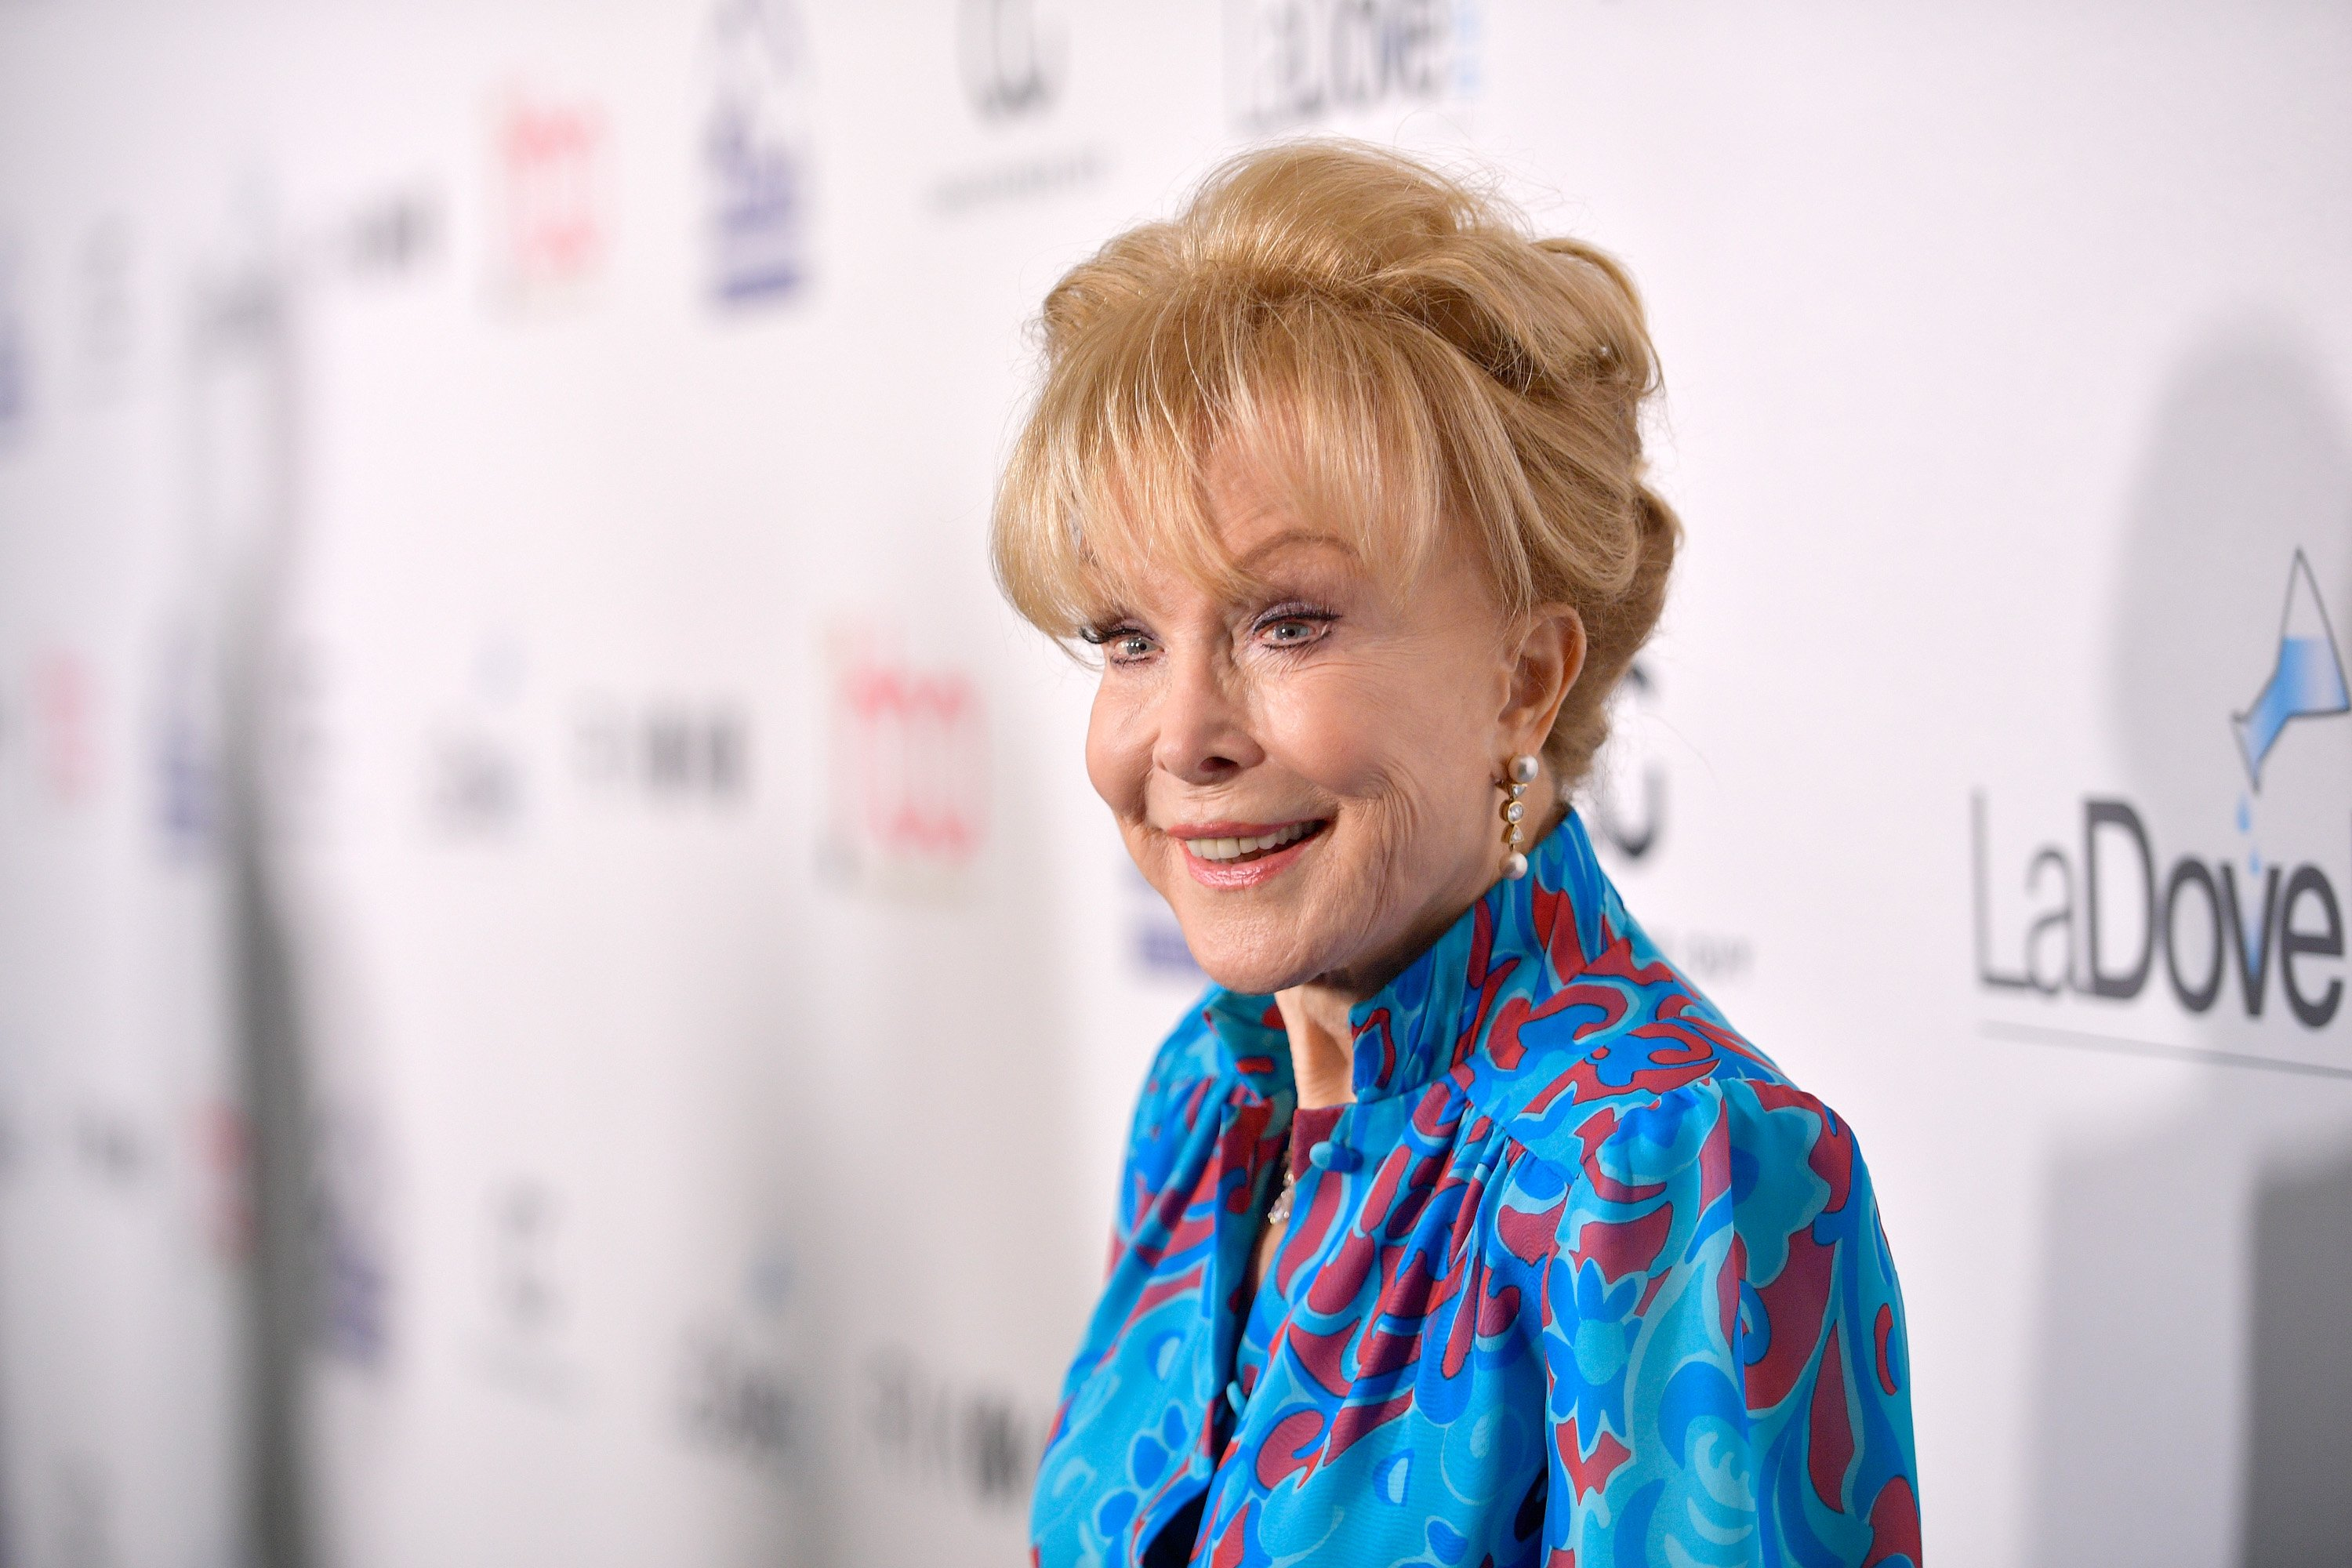 Barbara Eden attends the 4th Hollywood Beauty Awards in Los, Angeles, California on February 25, 2018   Photo: Getty Images